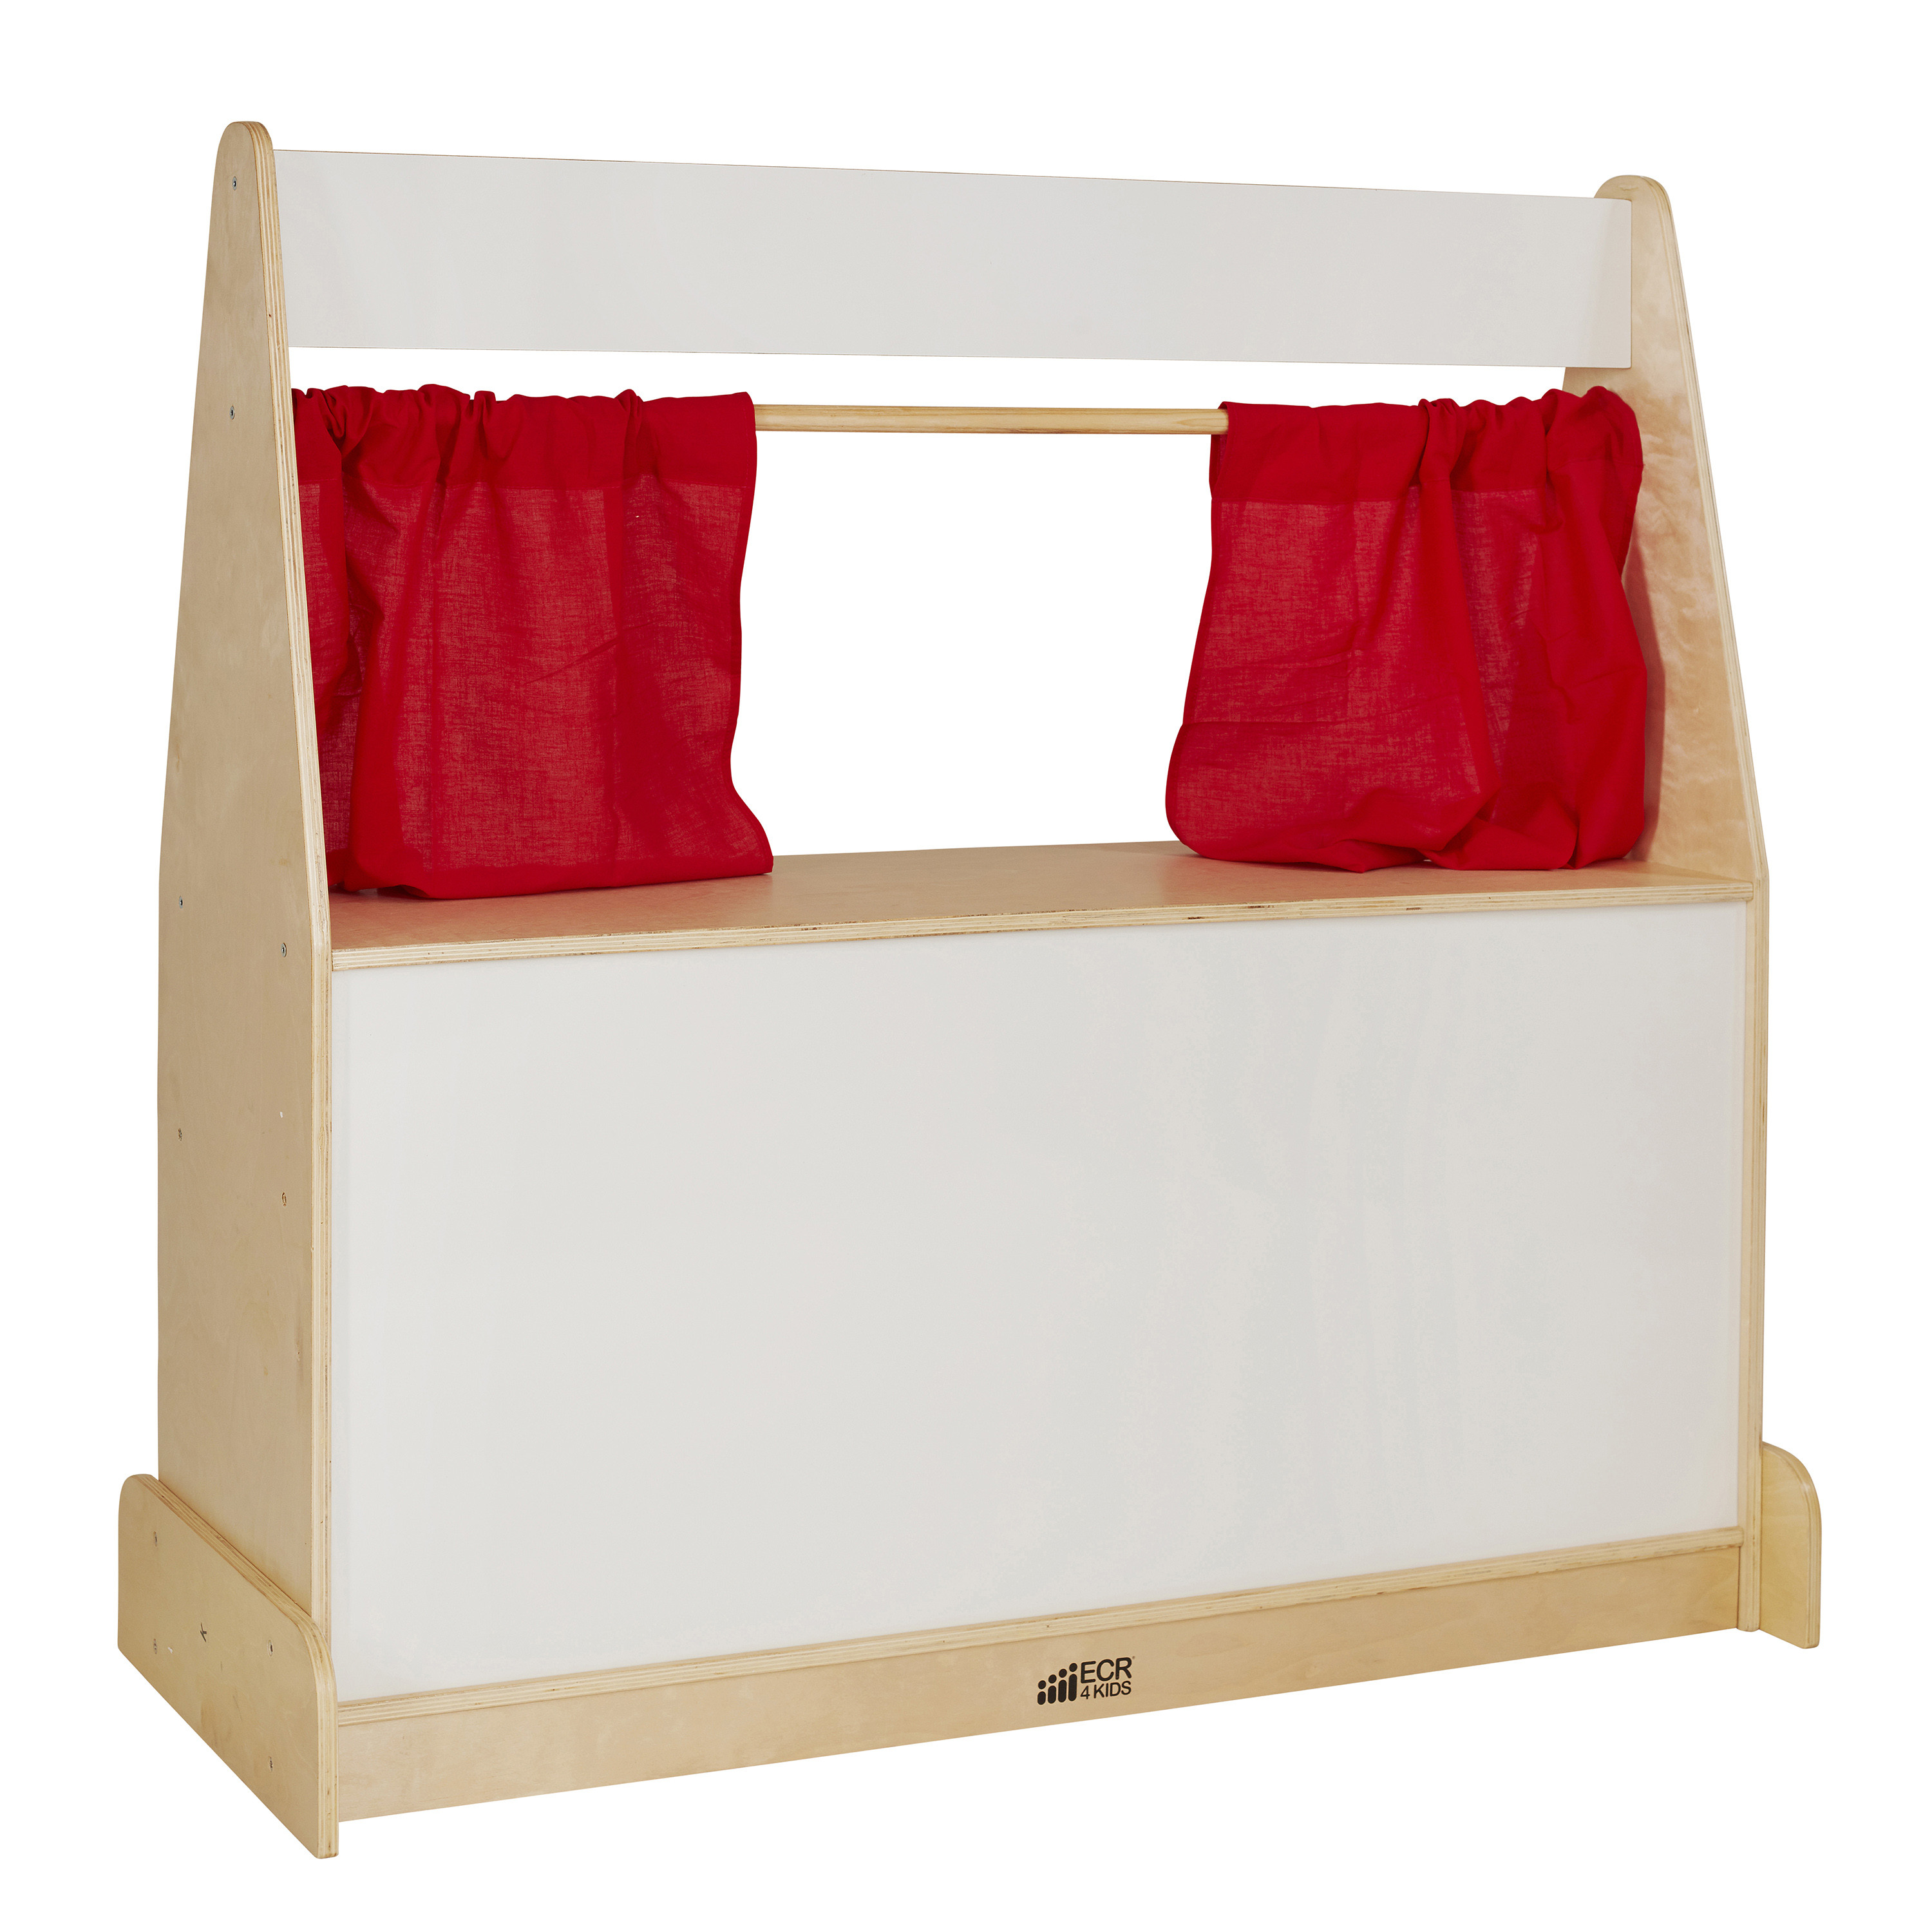 Puppet Theater Dry-Erase Board by ECR4Kids